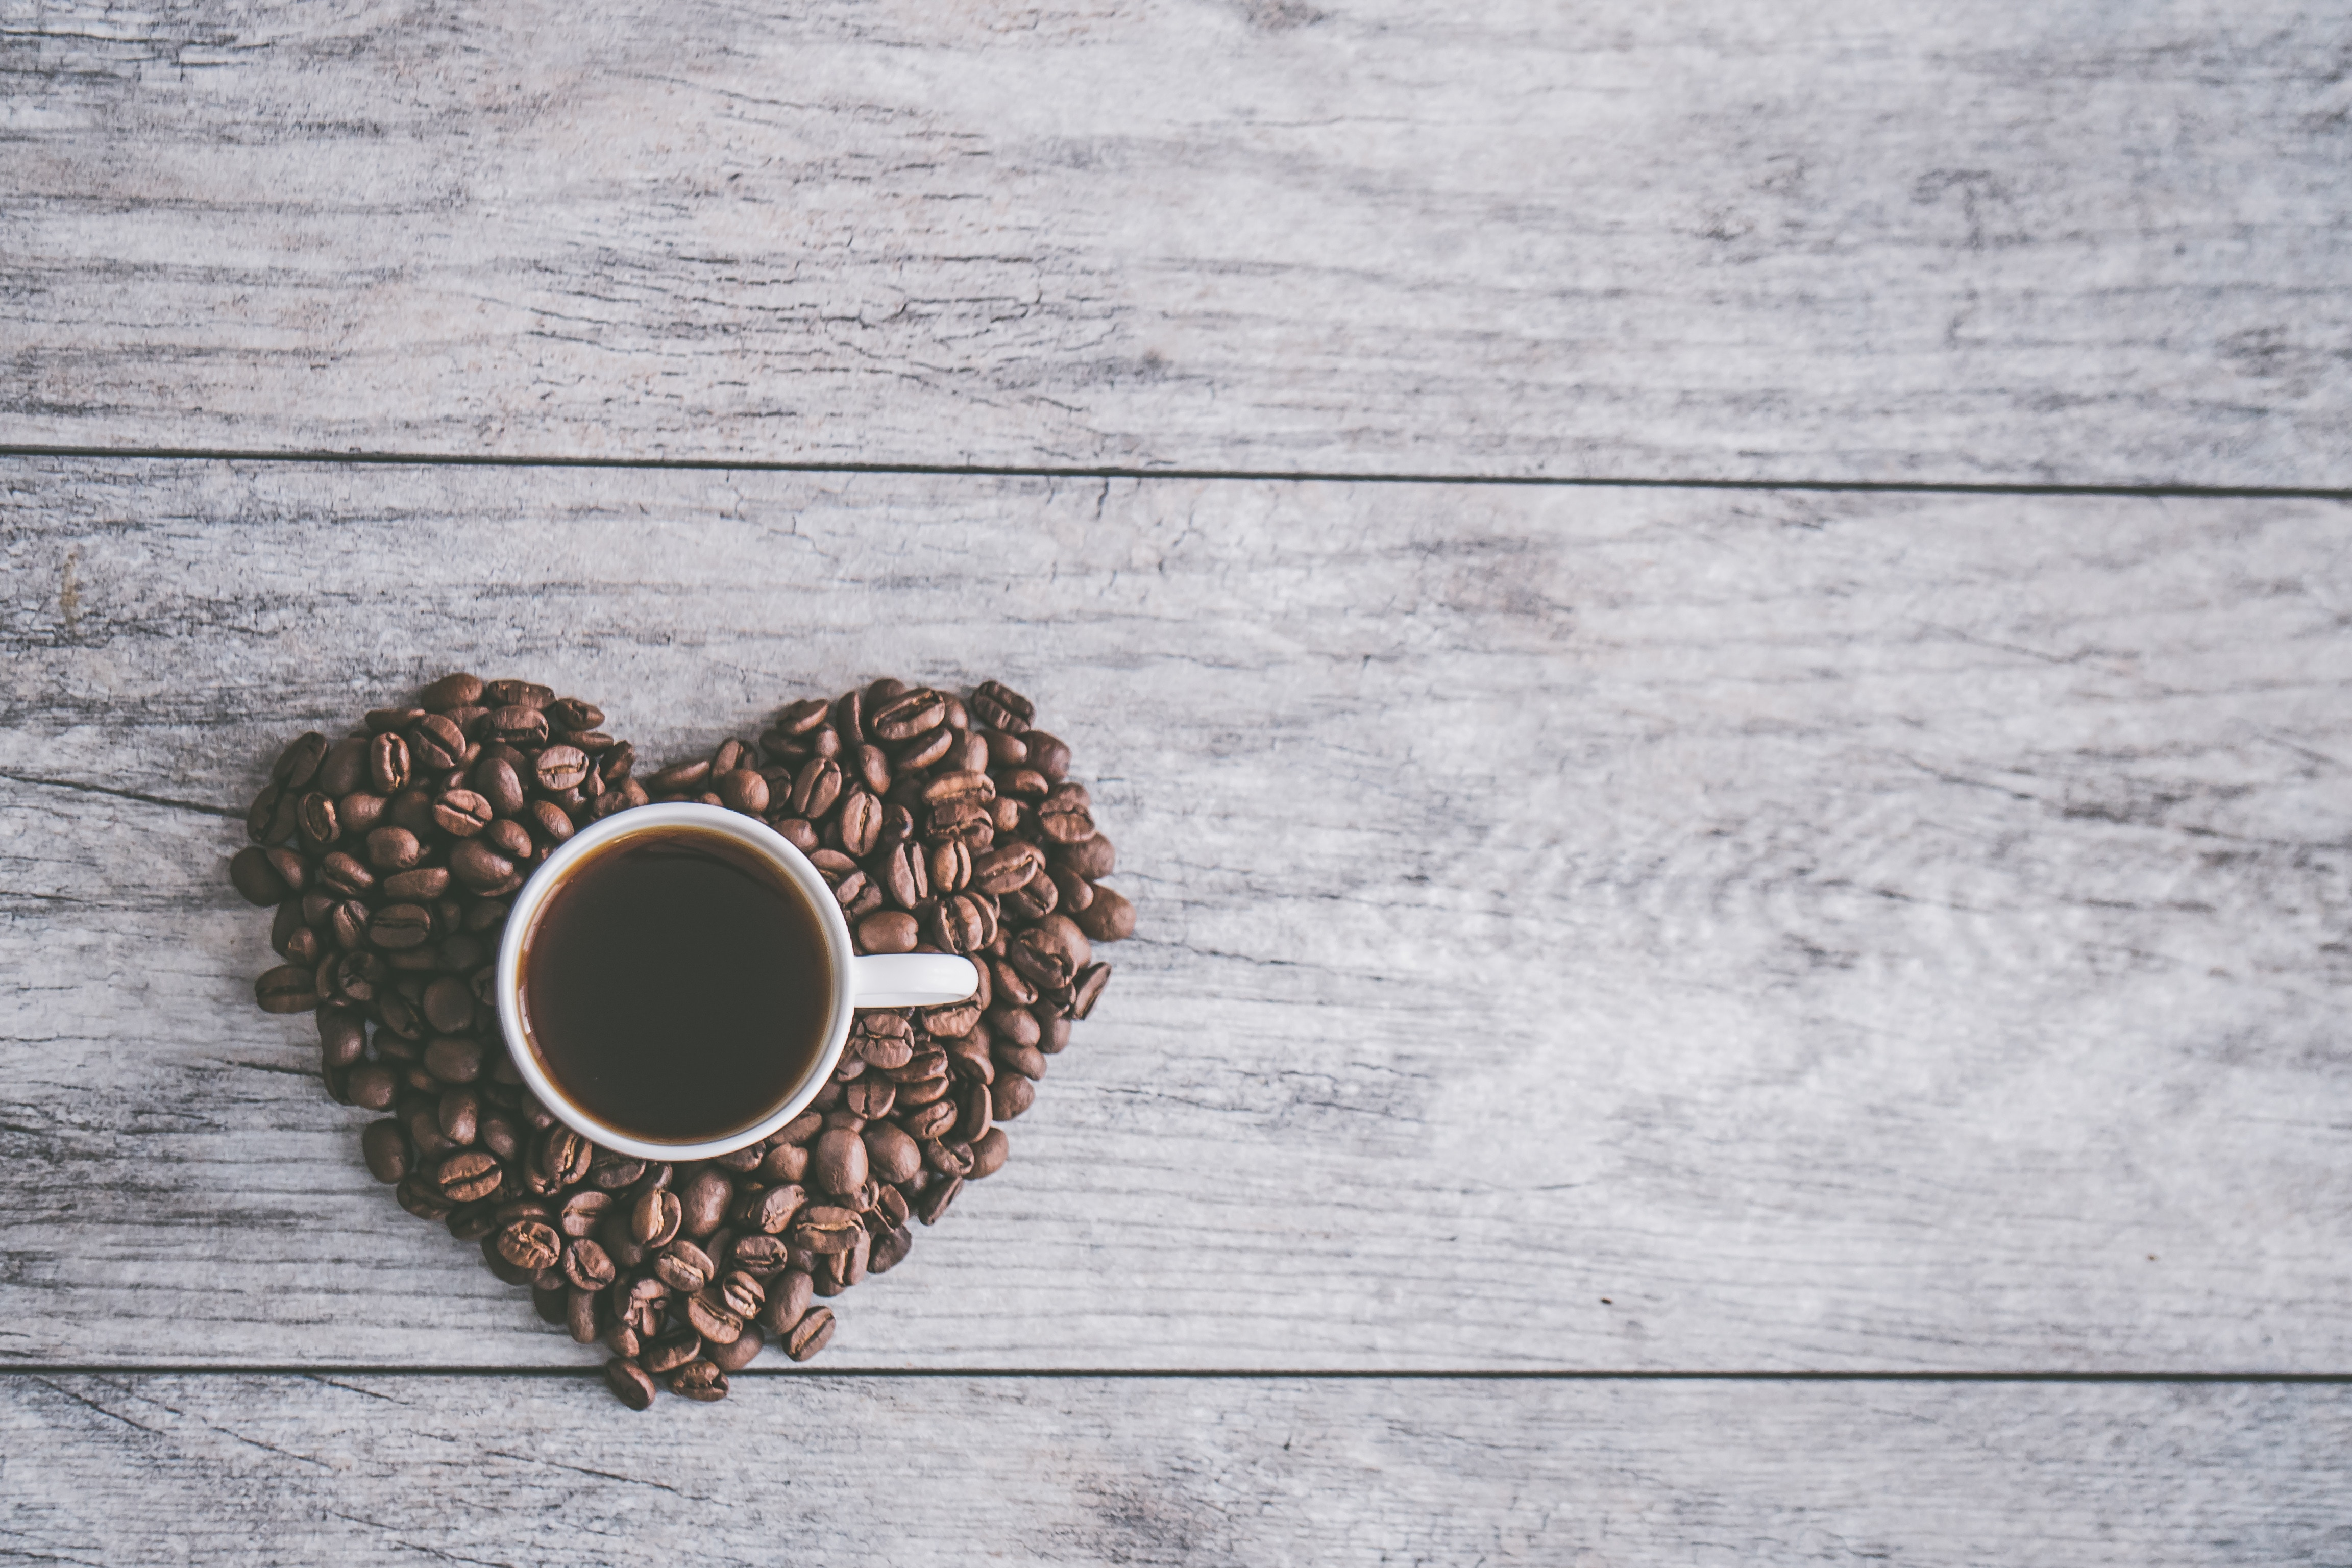 81294 download wallpaper Food, Coffee Beans, Coffee, Heart, Love screensavers and pictures for free